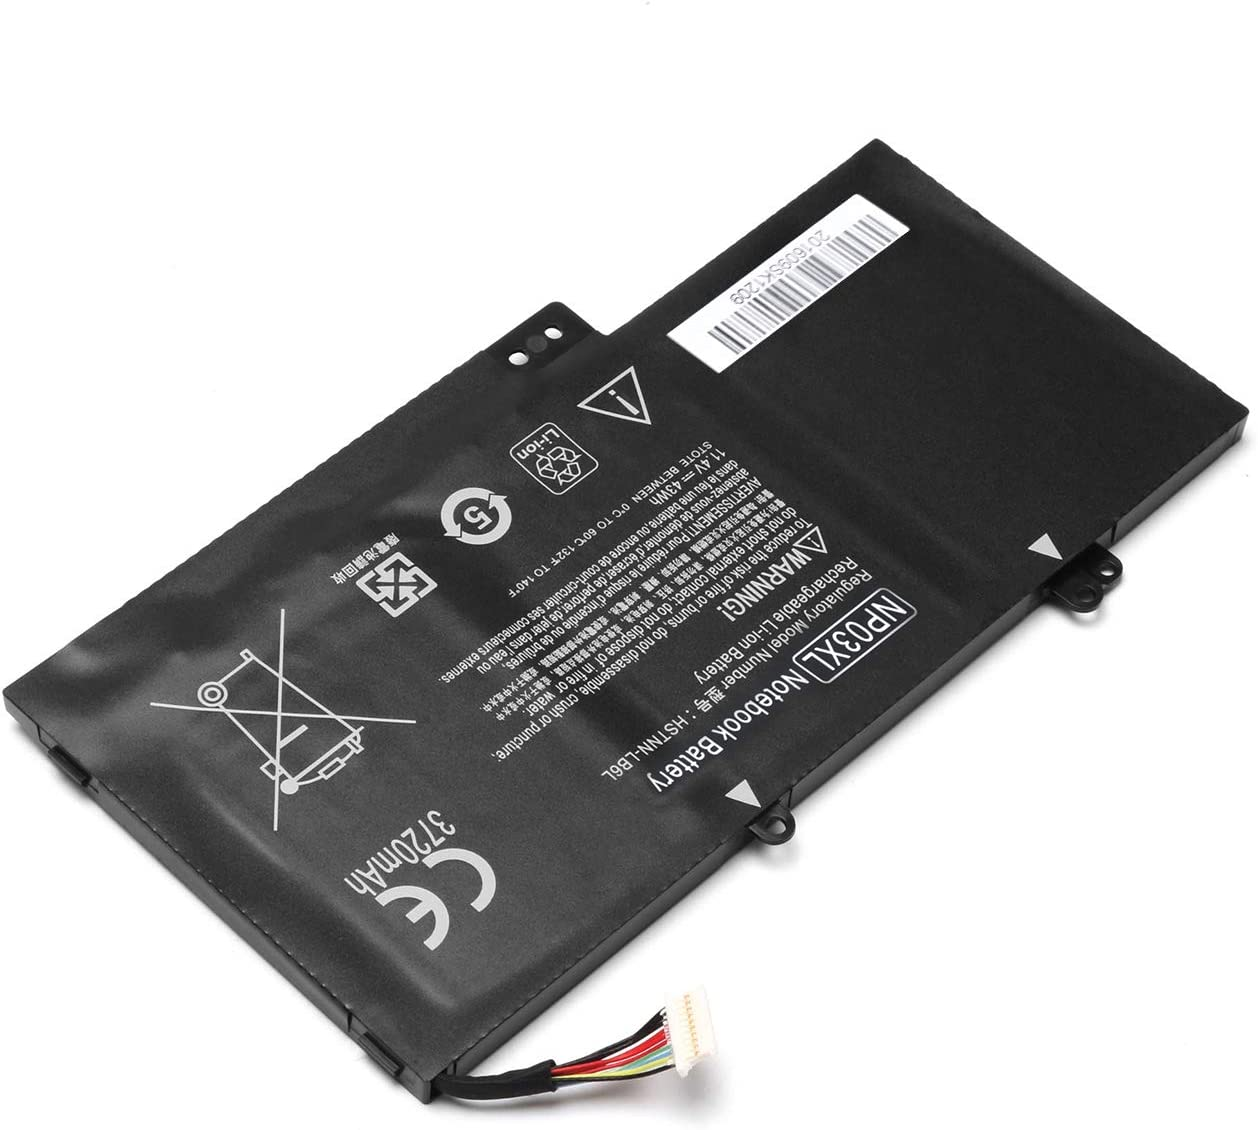 NP03XL Laptop Battery for HP Pavilion X360 13-A010DX 13-b116t, HP Envy 15-U010DX 15-U337CL 15-U050CA, Compatible with 760944-421 761230-005 HSTNN-LB6L TPN-Q146 TPN-Q147 TPN-Q148 TPN-Q149